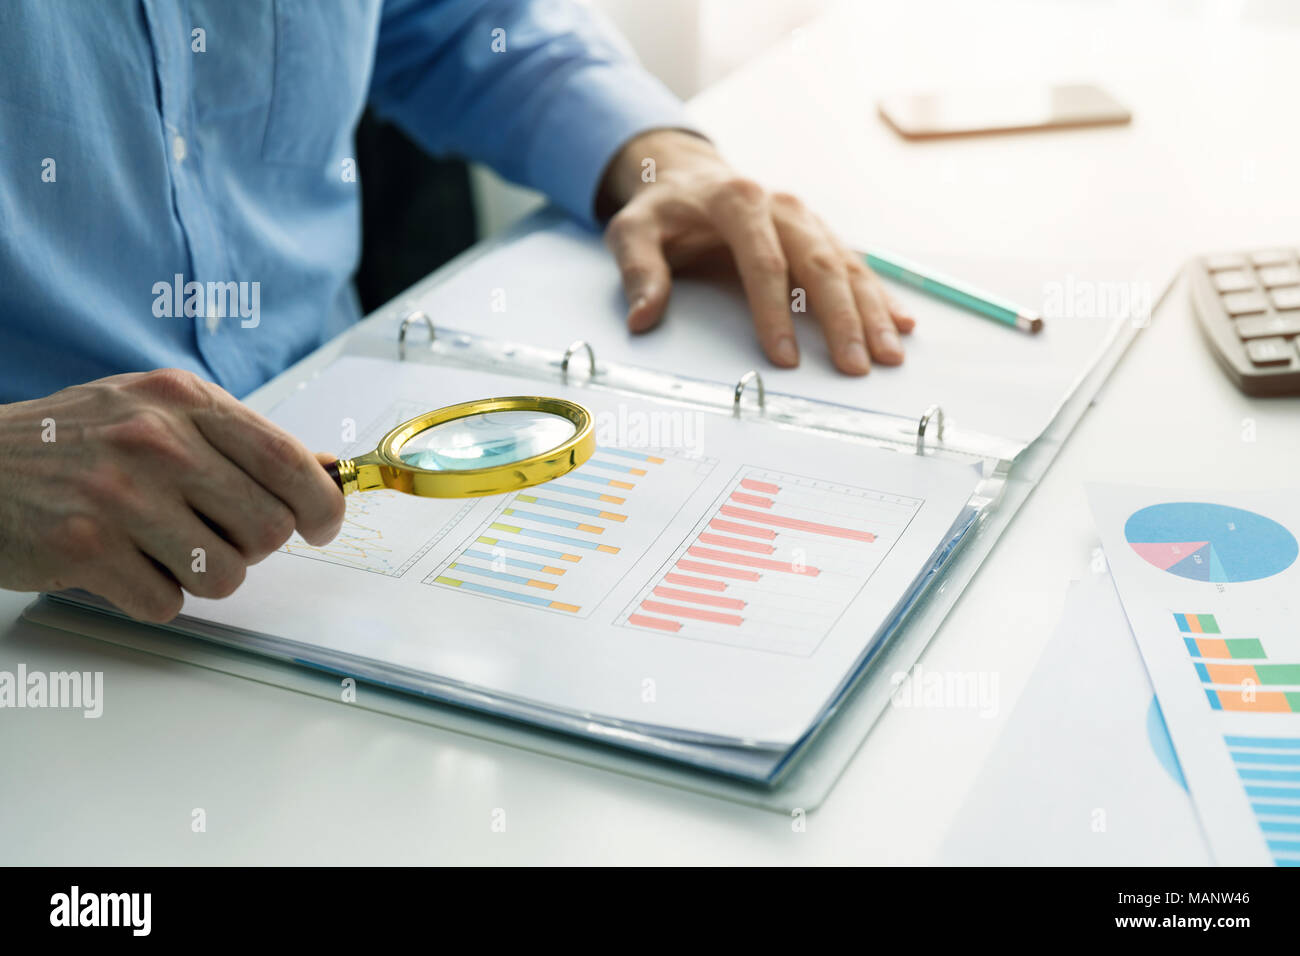 internal audit concept - man with magnifying glass inspecting business documents - Stock Image